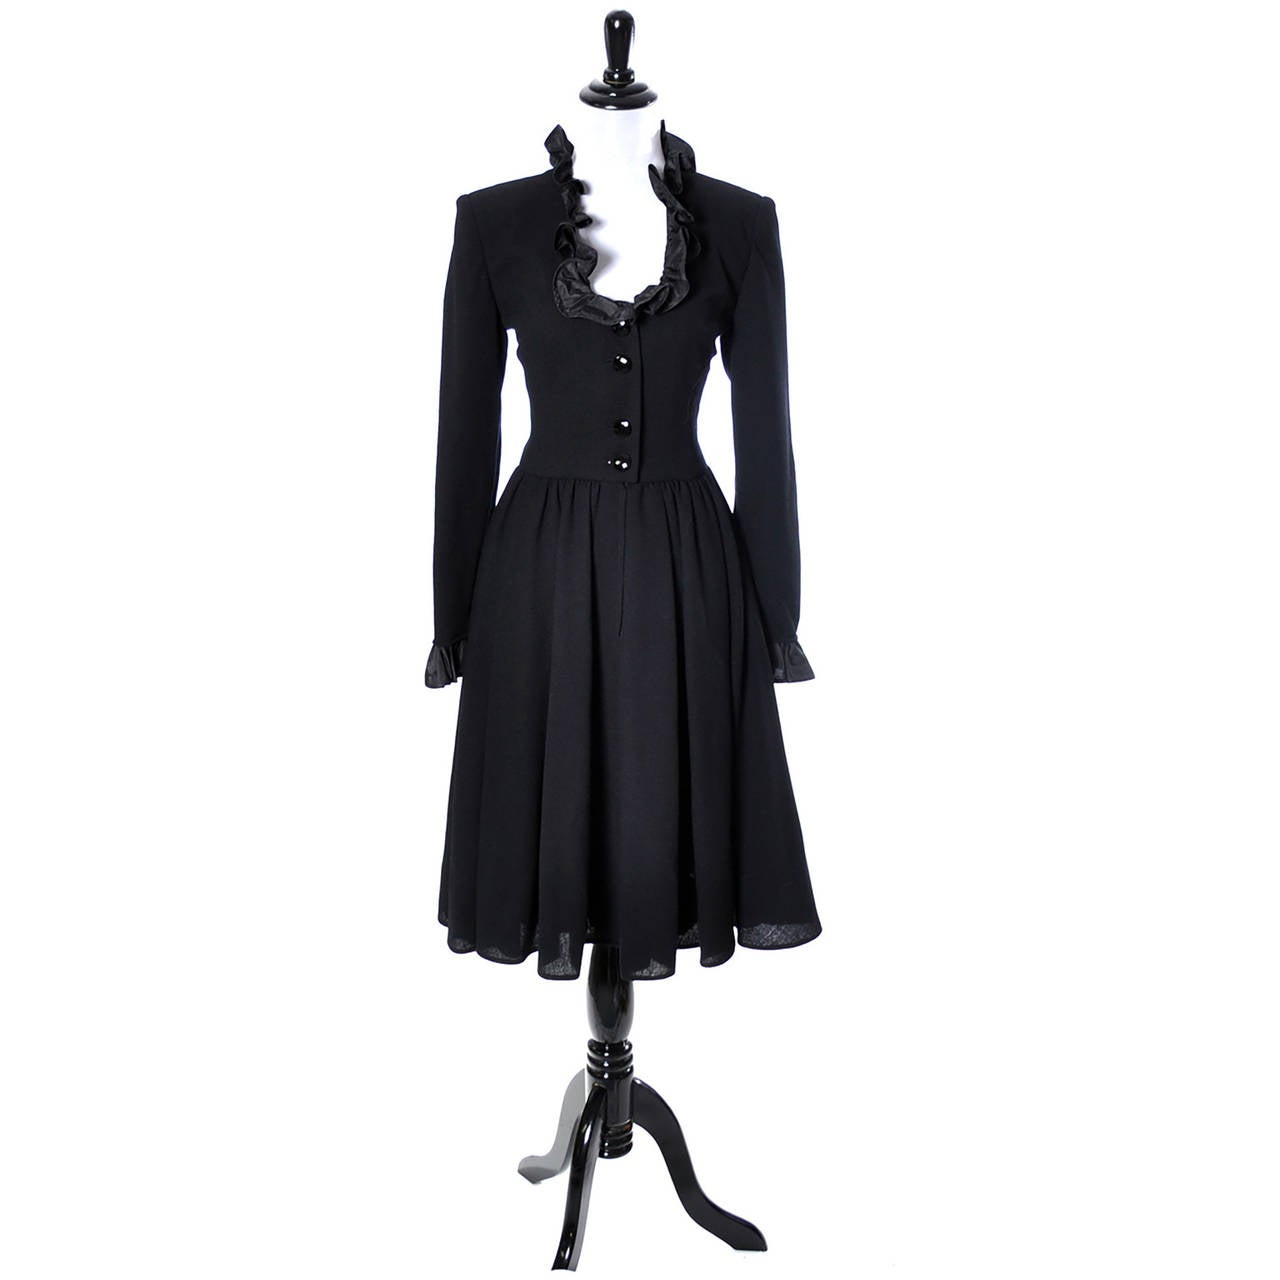 Vintage Valentino Black Wool Crepe Dress w/ Ruffled Taffeta Trim Size 6 3